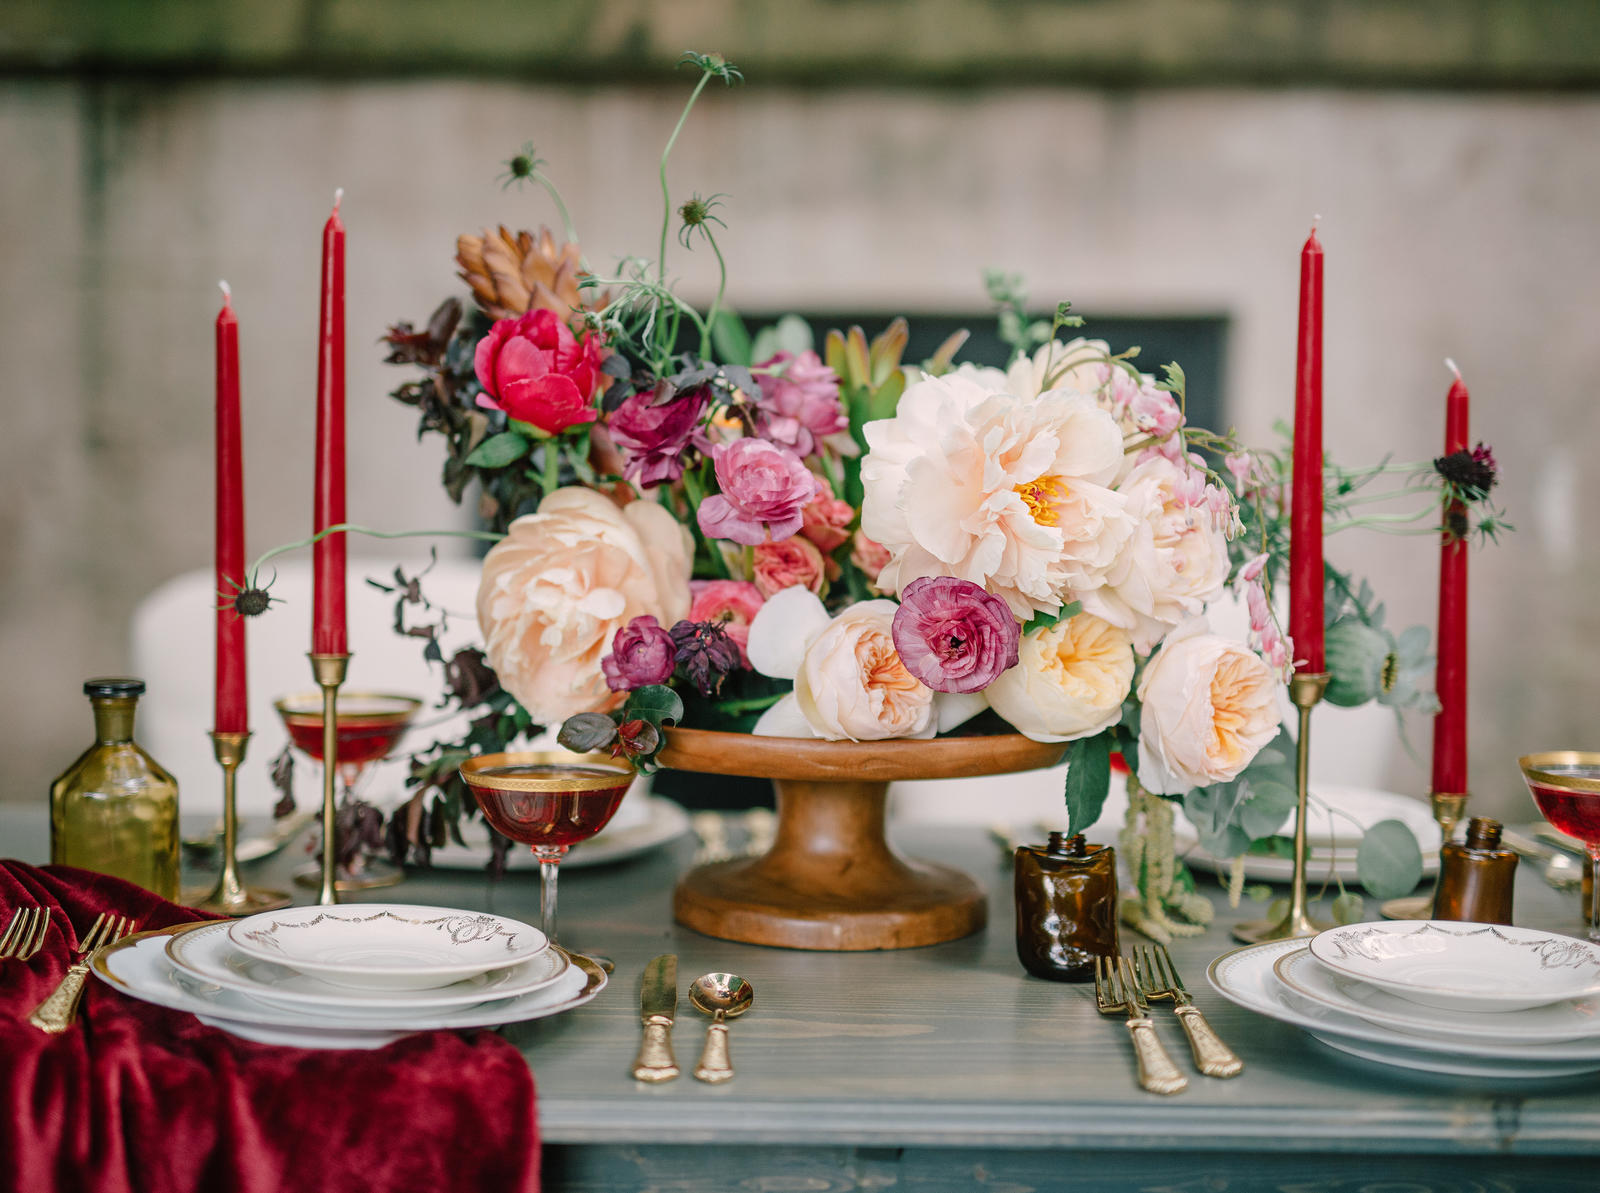 Editorial Photography | Atlanta, GA | A place setting with a floral arrangement on a pedestal as a centerpiece.